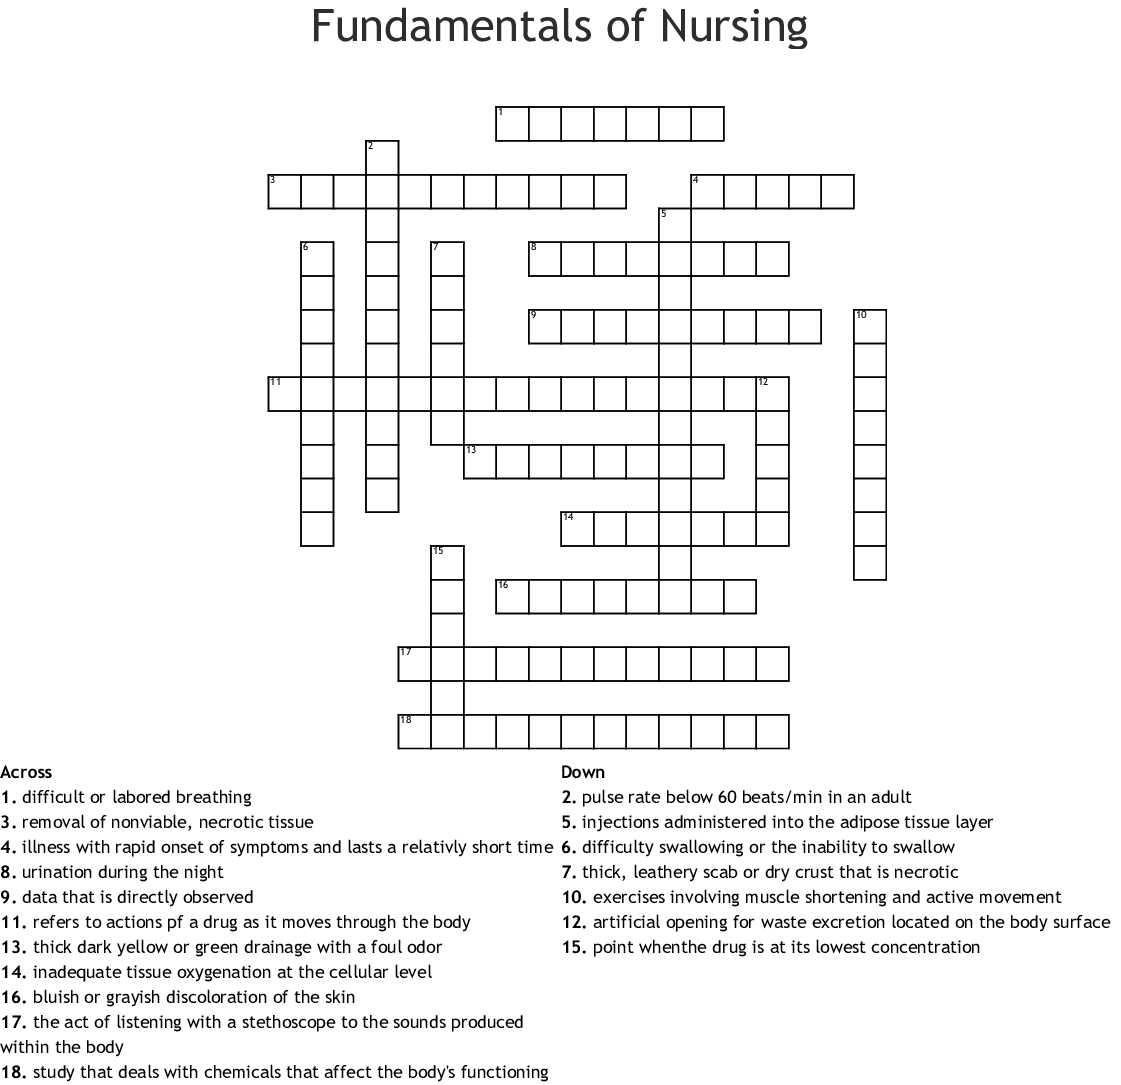 Fundamentals Of Nursing Crossword - Wordmint - Printable Nursing Crossword Puzzles